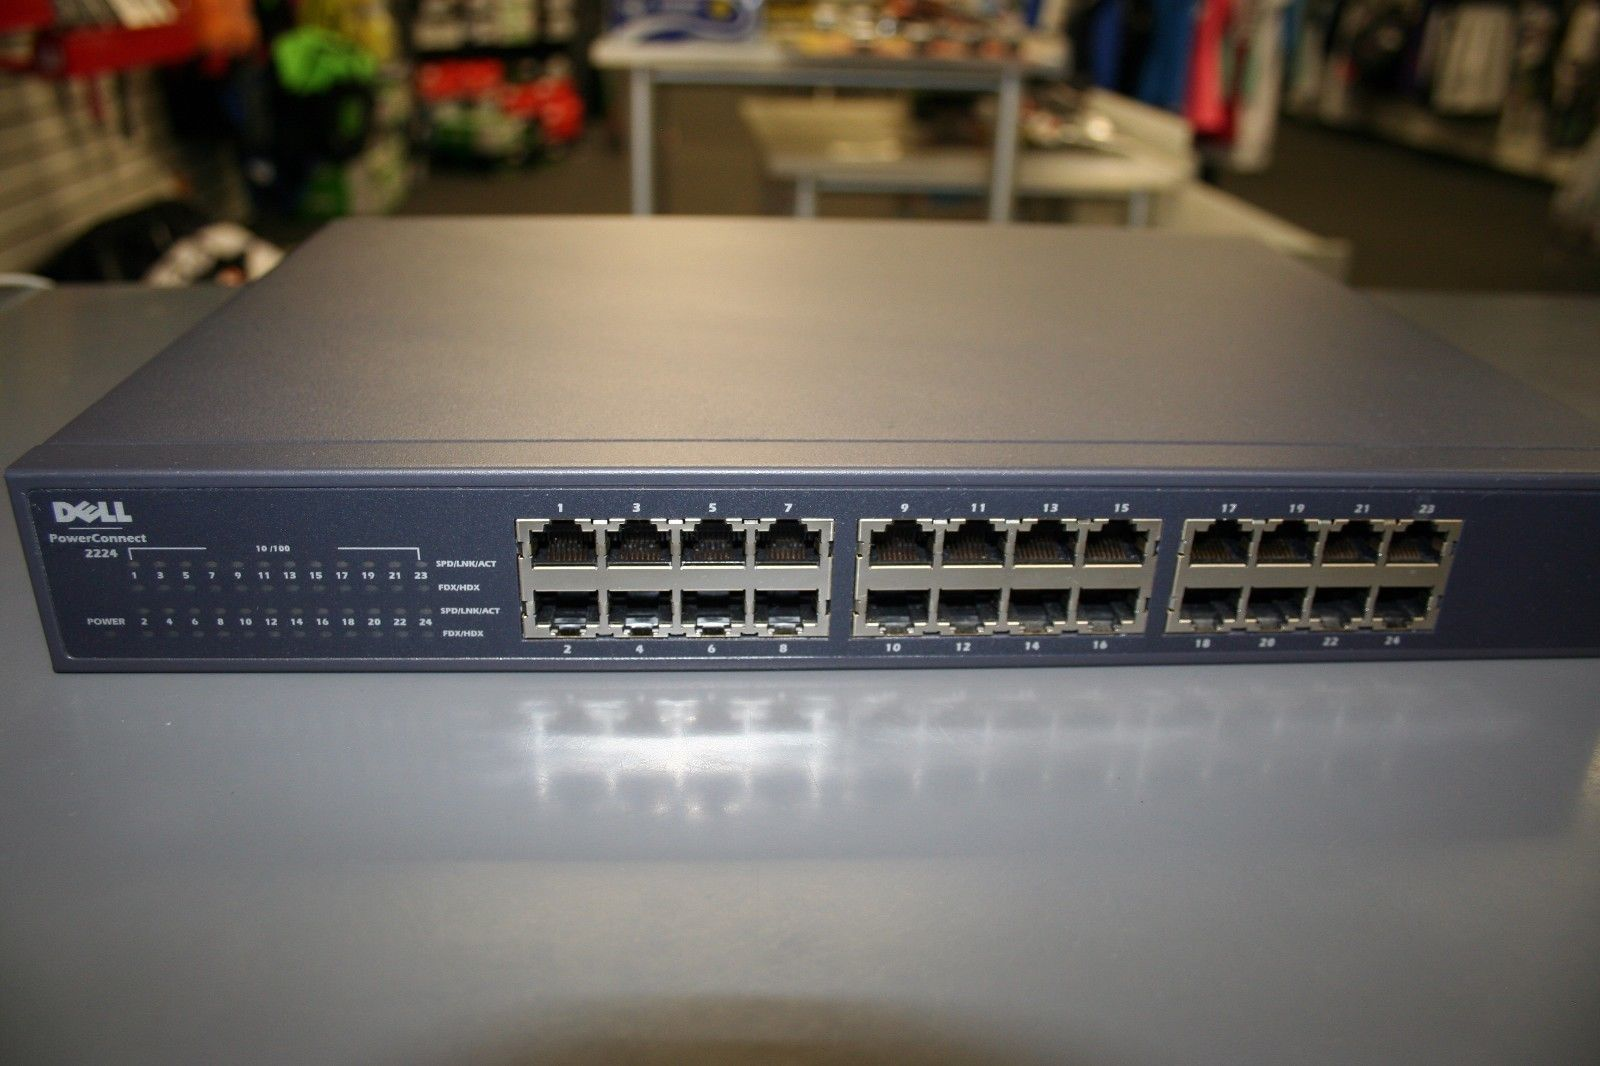 Dell Powerconnect 2224 10 100 24 Port Switch Used Free Usa Ship Deals Pinterest